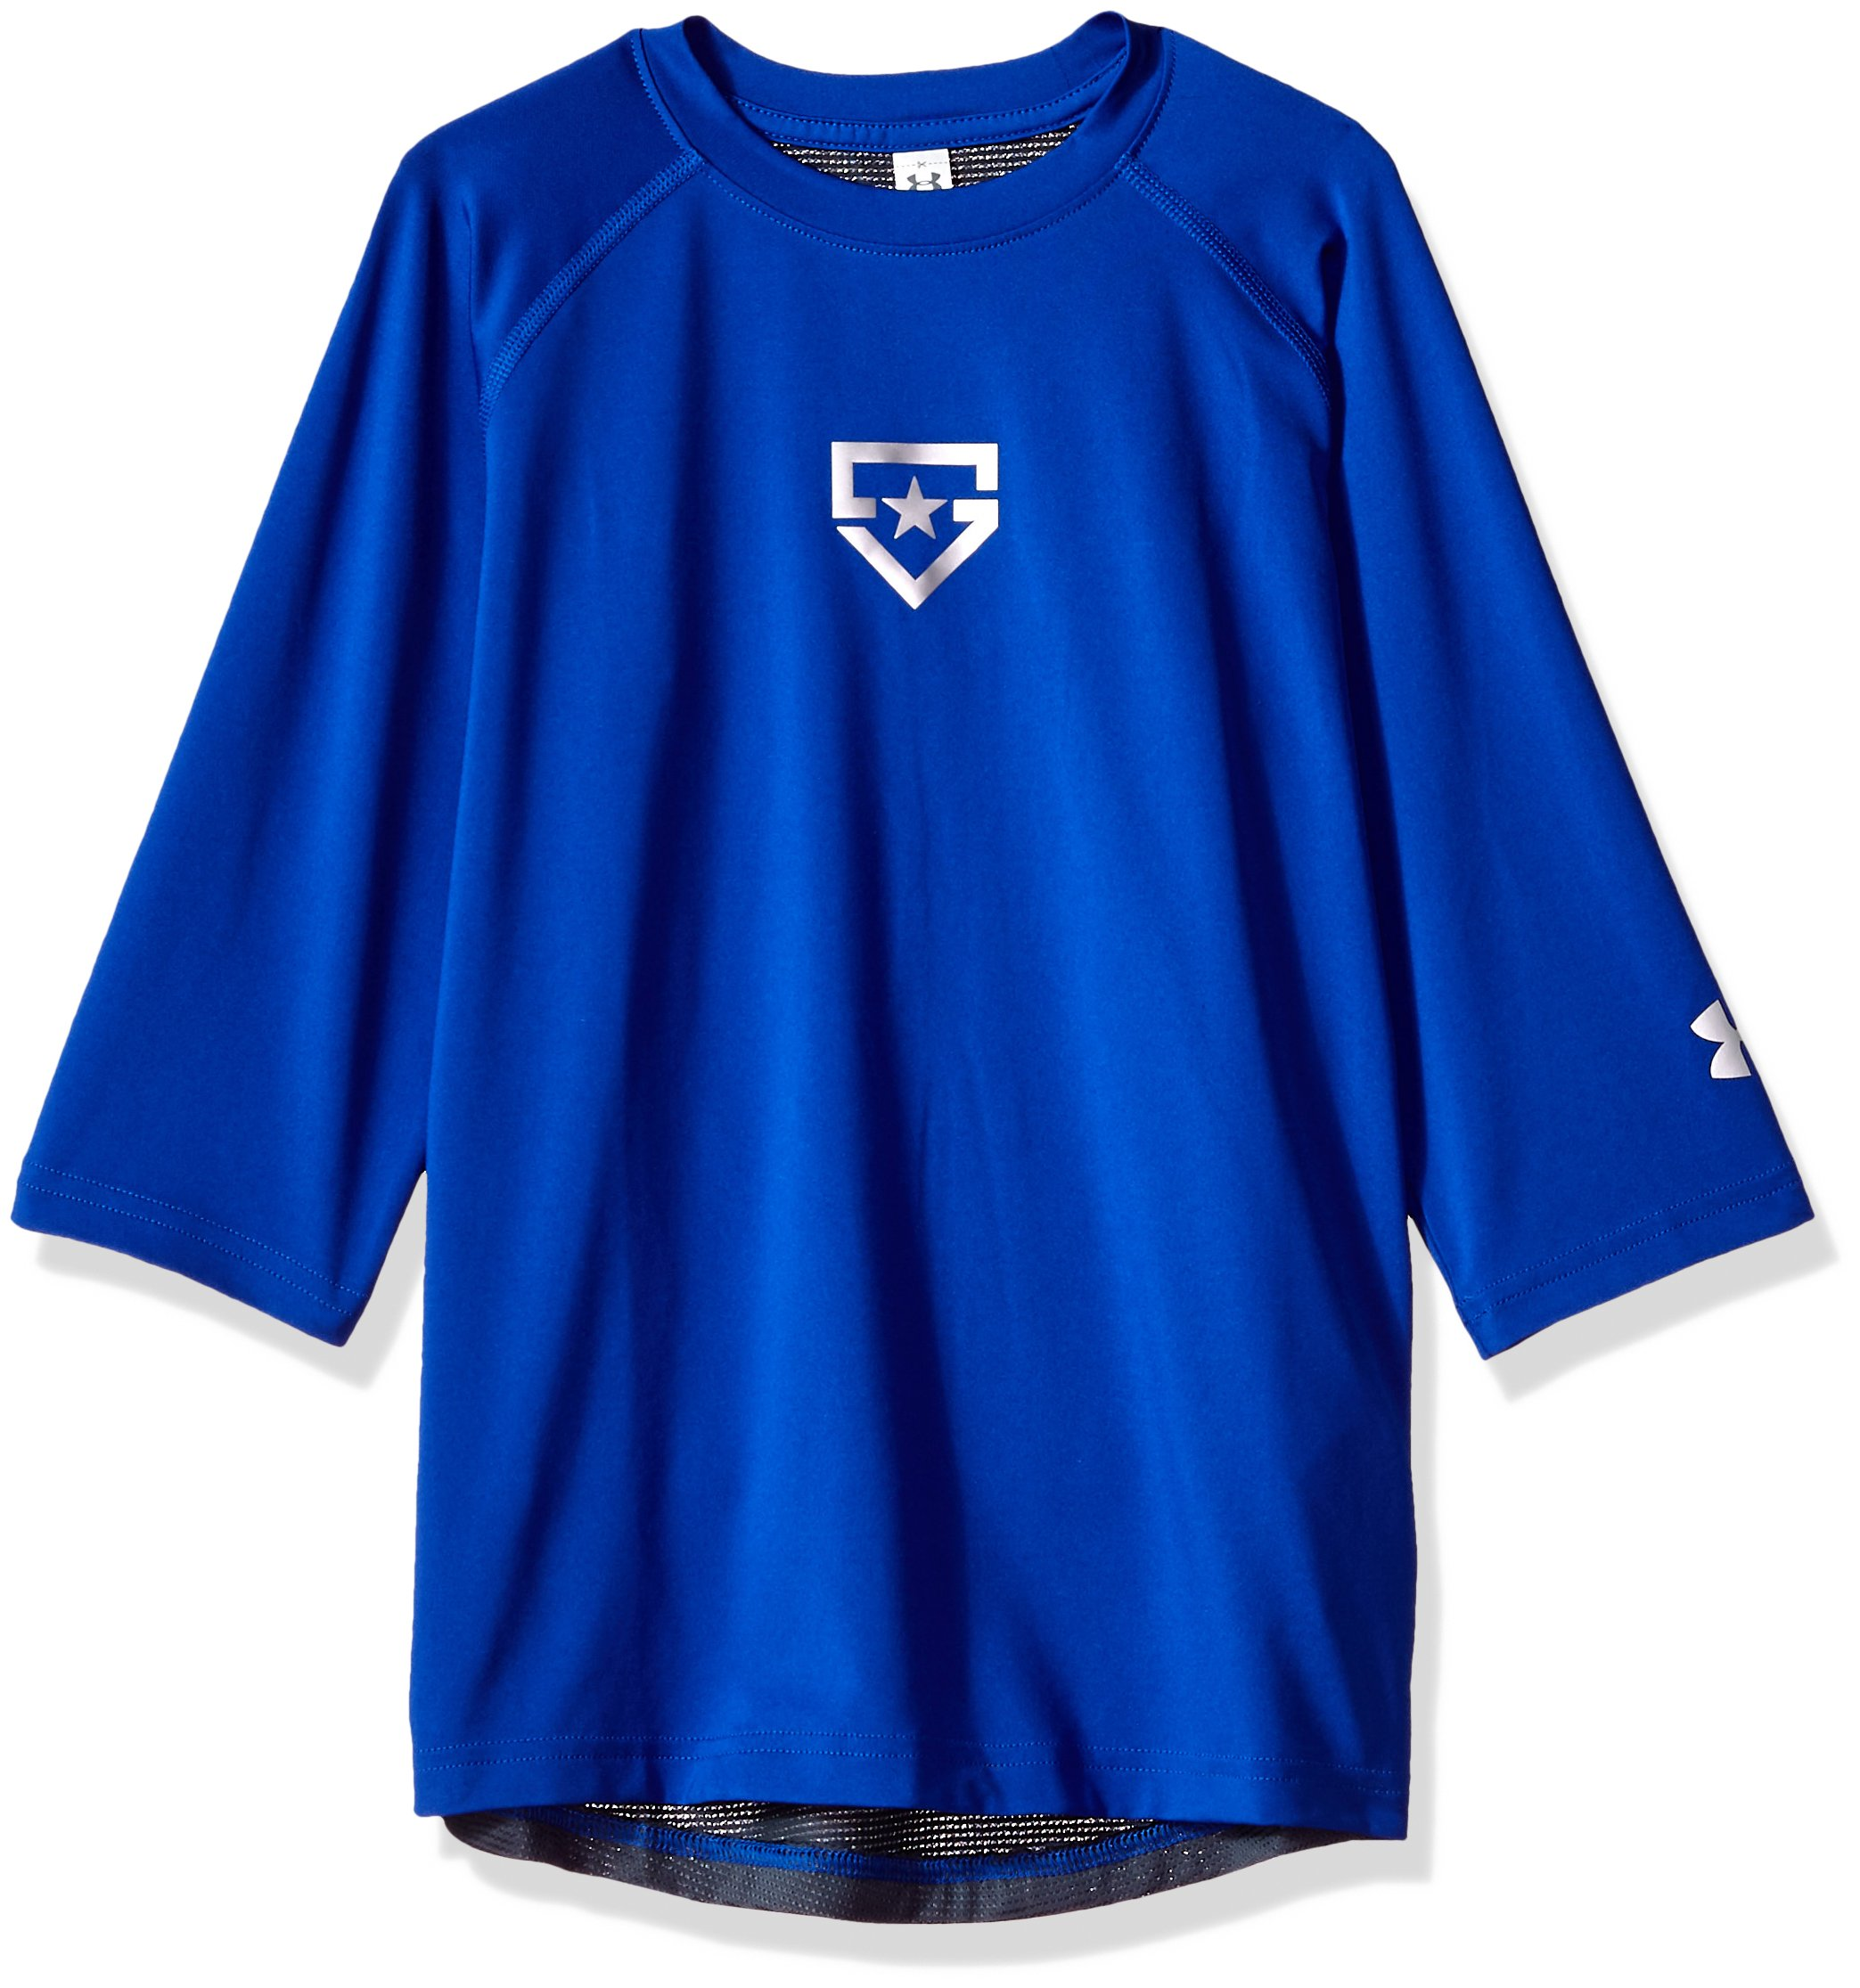 Boy's Under Armour Boys' Heater 3/4 sleeve T-Shirt, Royal (400)/Silver, Youth Large by Under Armour